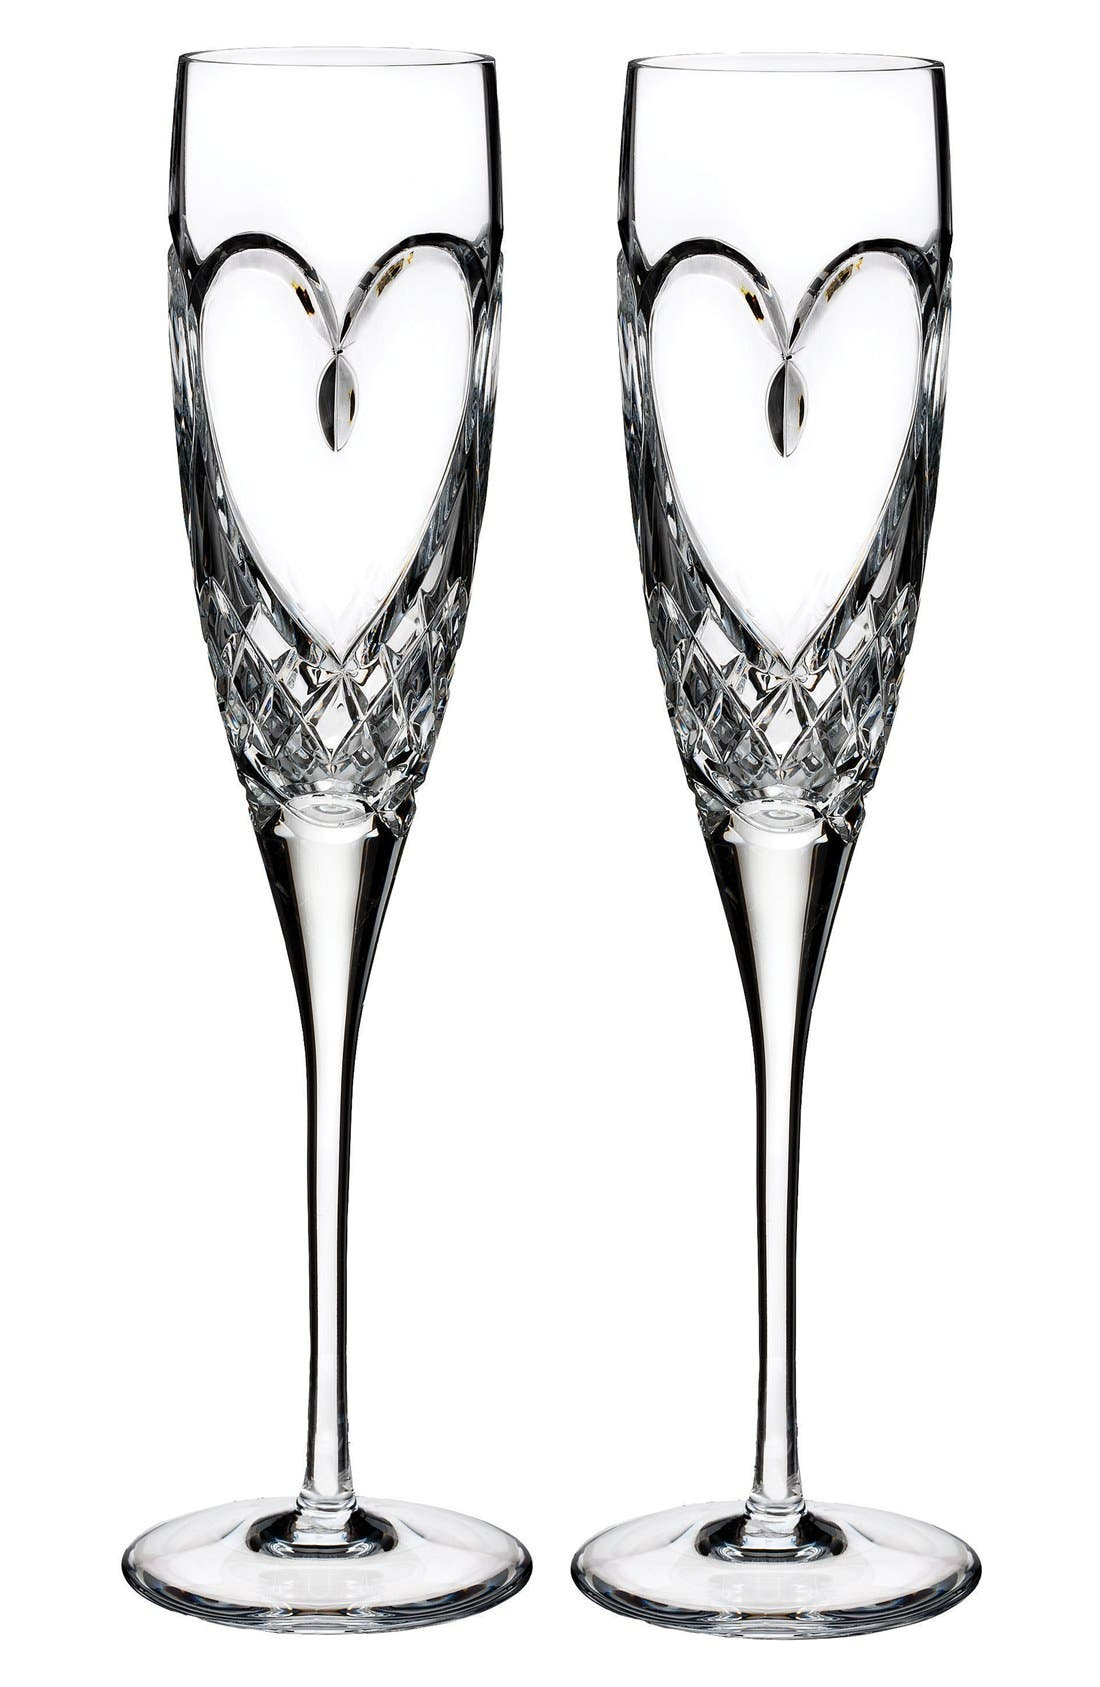 Main Image - Waterford 'True Love' Lead Crystal Champagne Flutes (Set of 2)